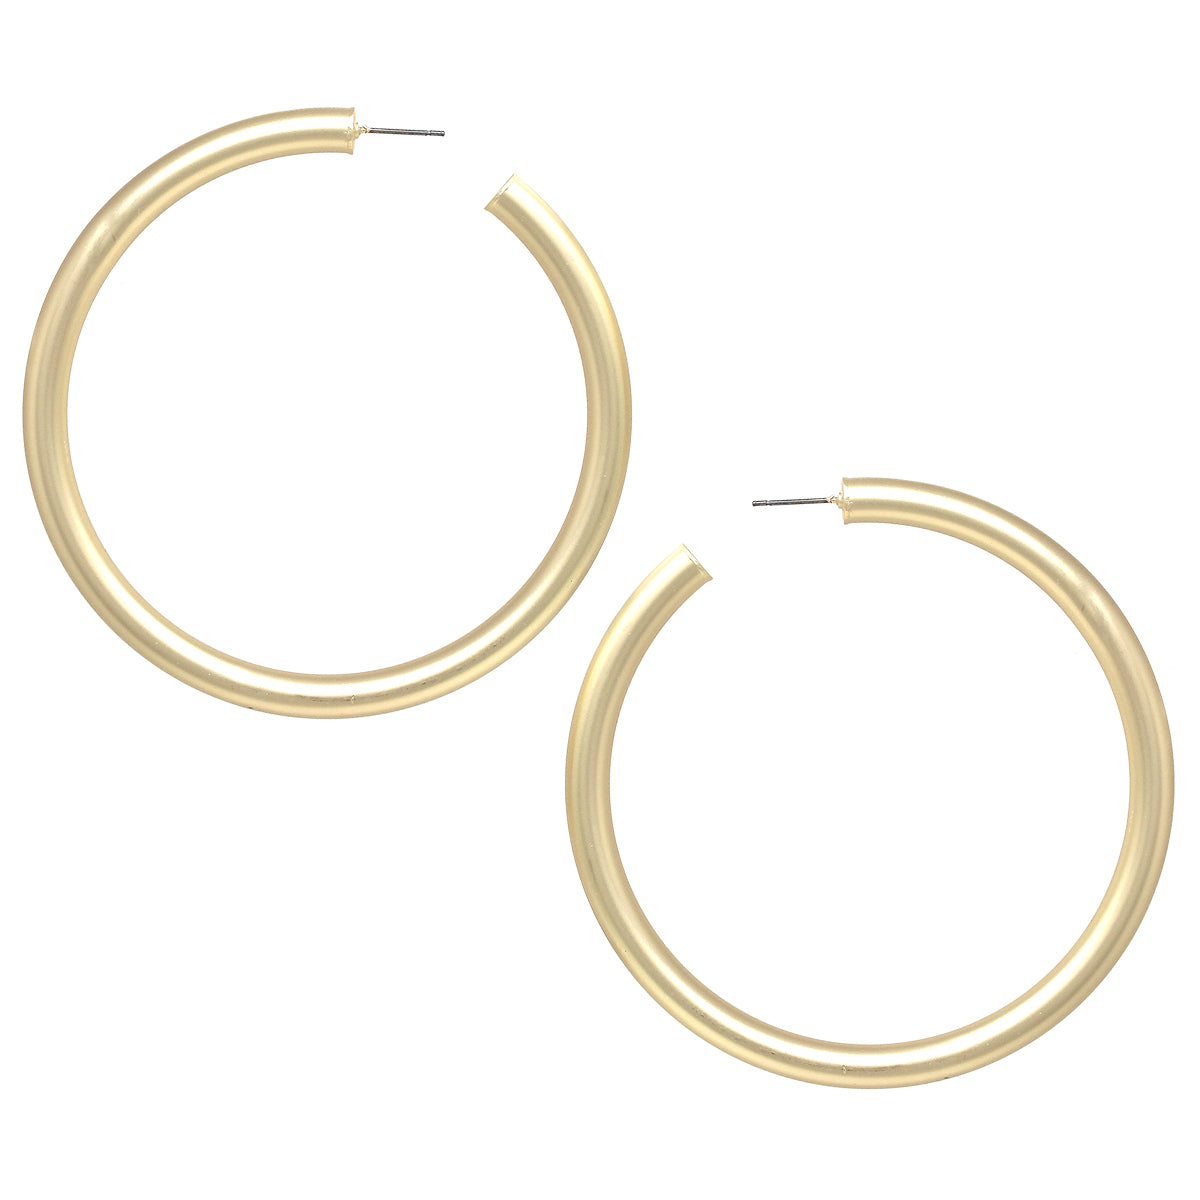 Hollow Metal Pipe Hoop Earrings (80 mm)